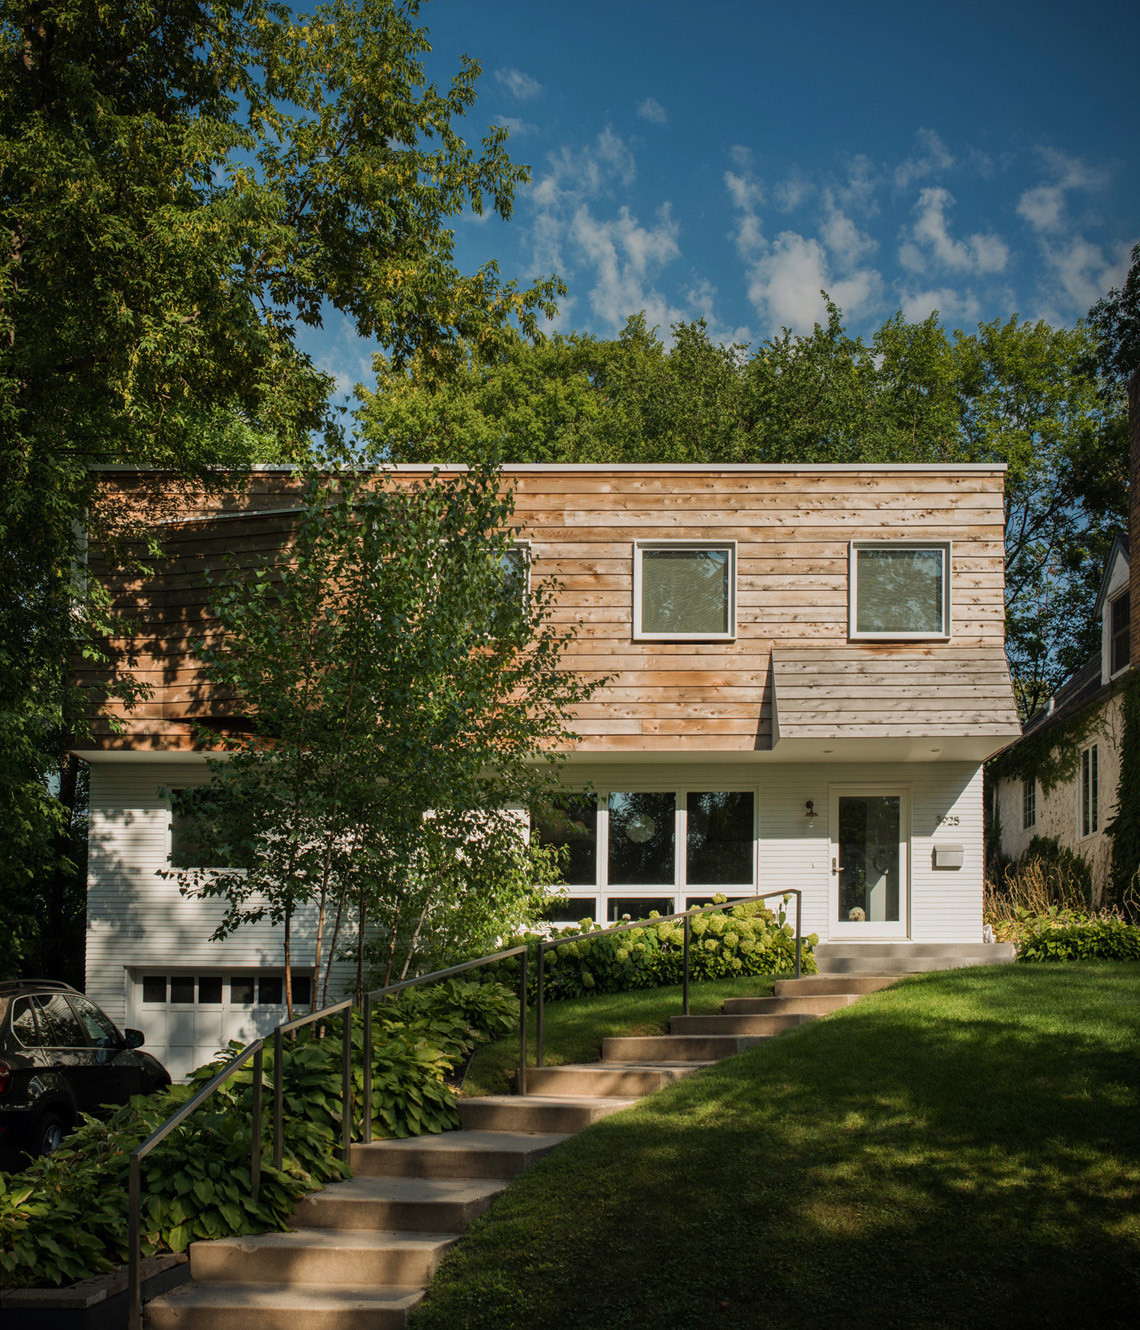 Modern home renovation in Linden Hills, Minnesota by Christian Dean Architecture